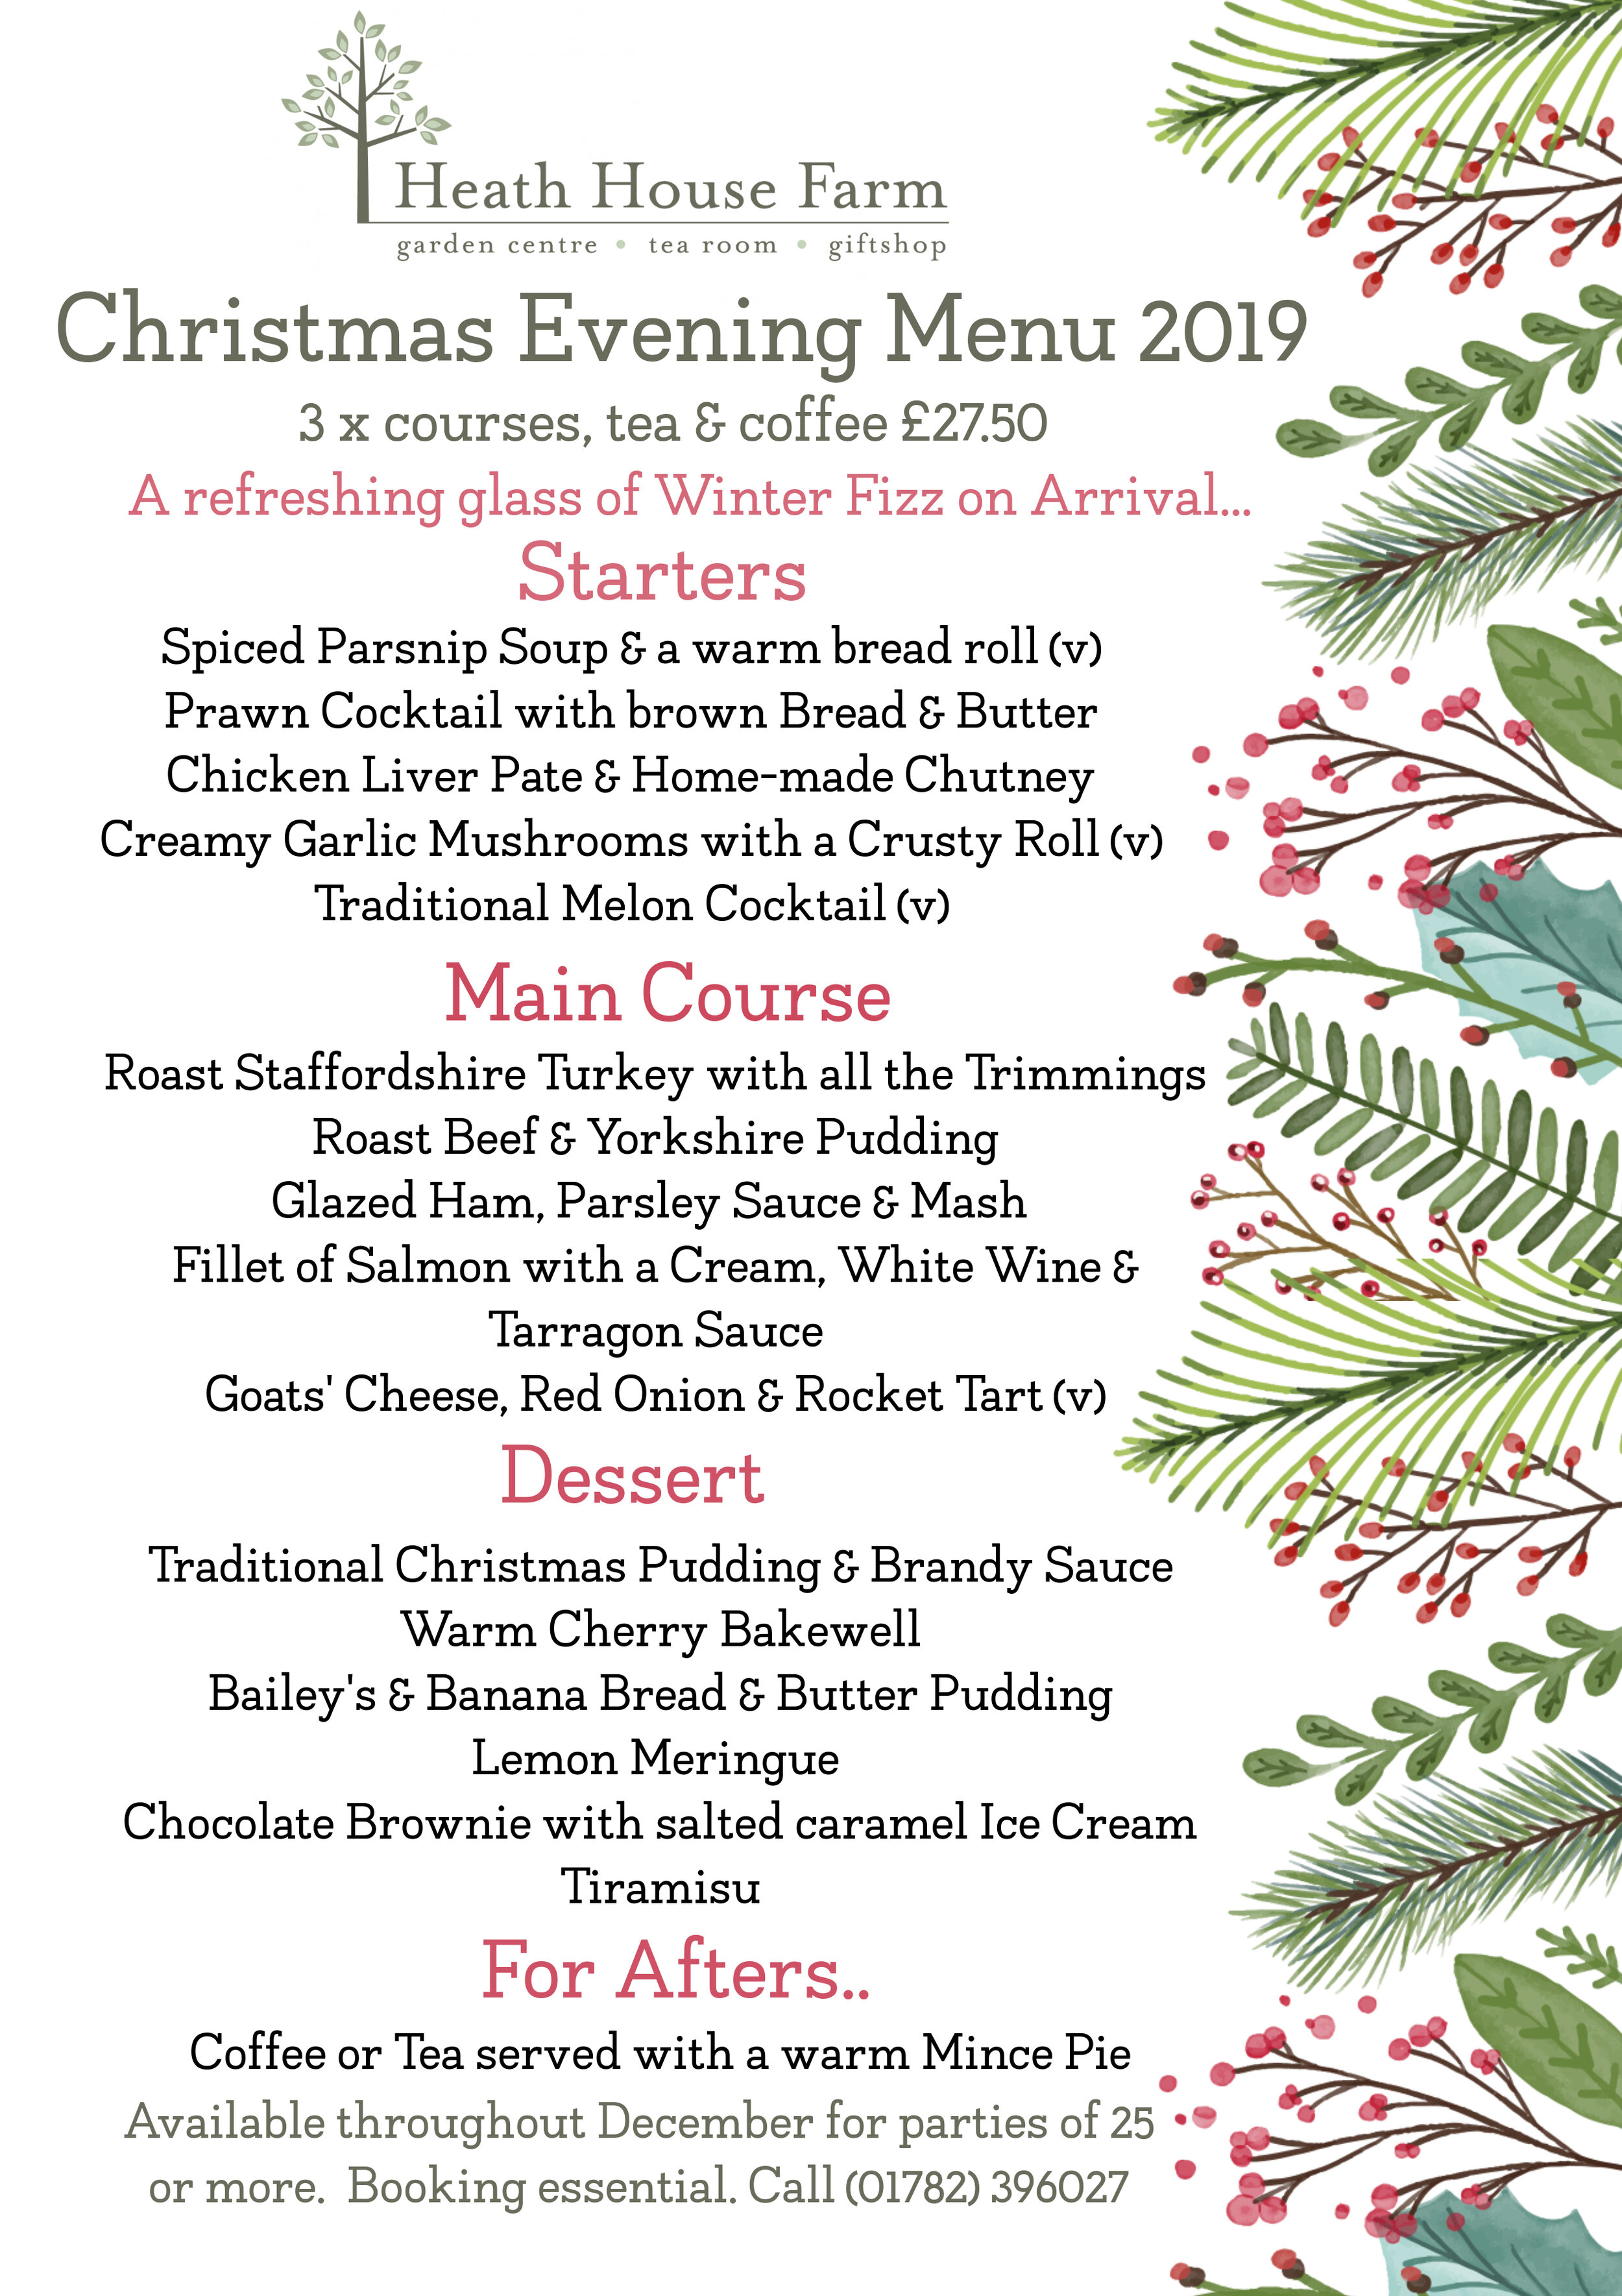 Christmas Evening Menu 2019.jpg